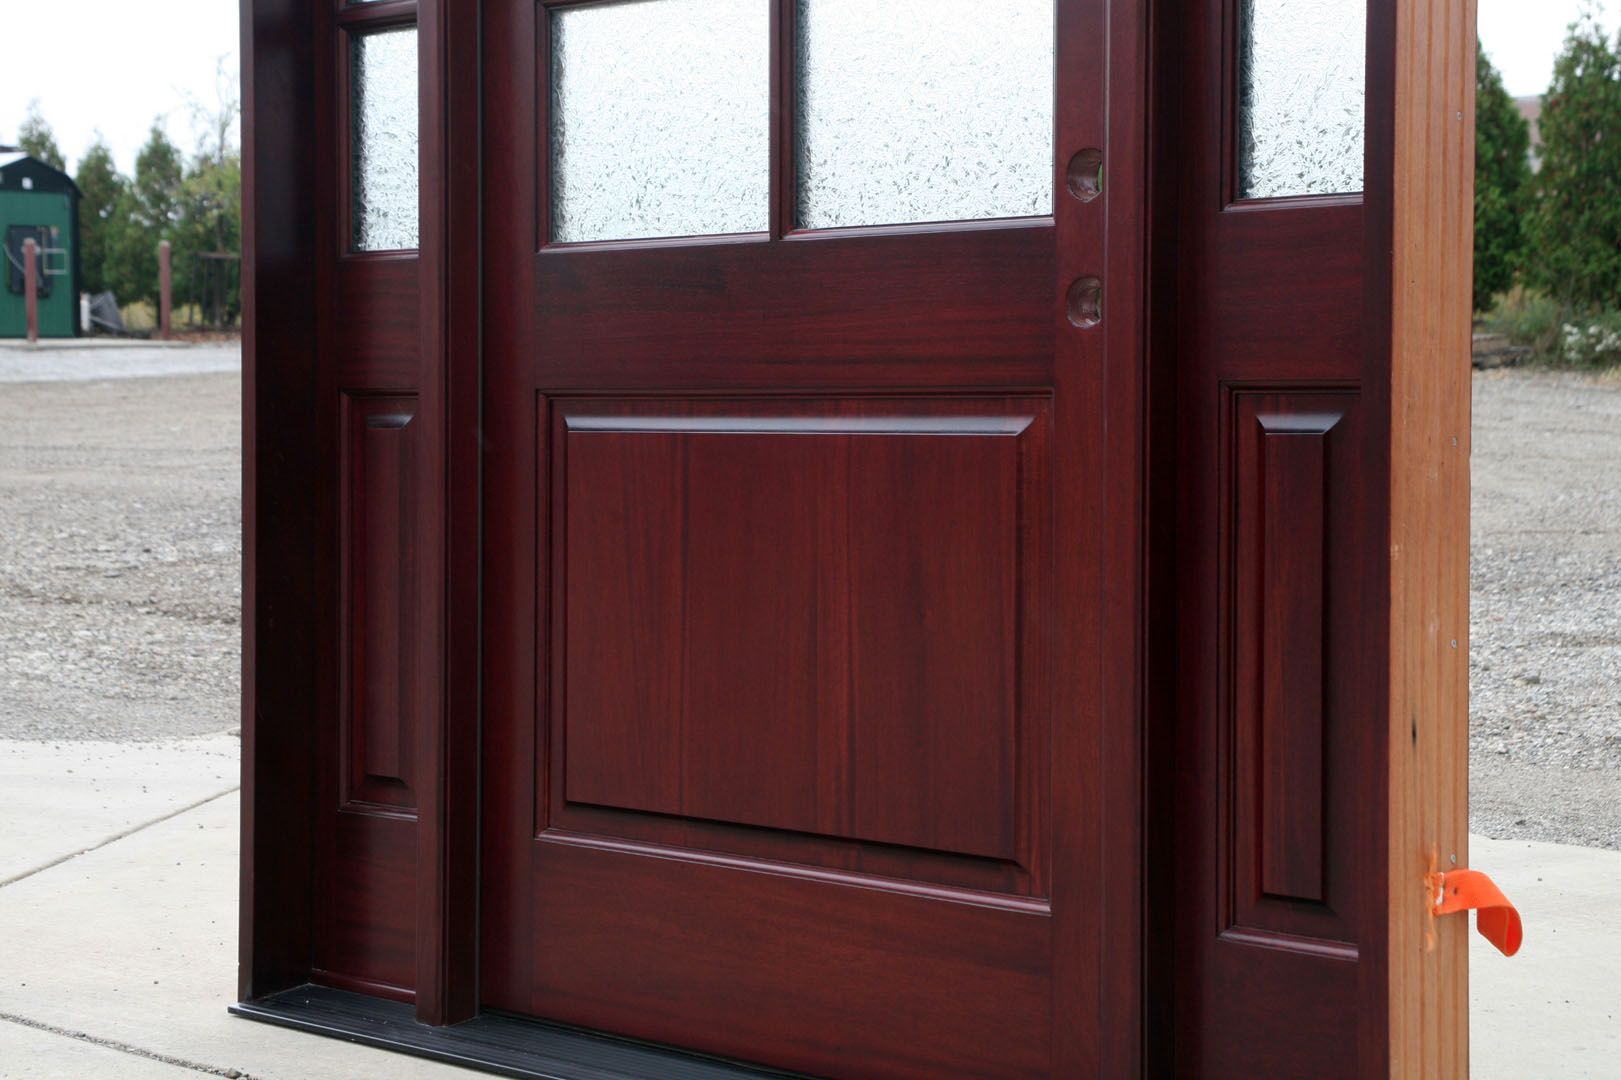 1080 #935638 Arch Top Entry Door With Arched Transom And Sidelites In Red Oak Color pic Arch Top Exterior Doors 38711621